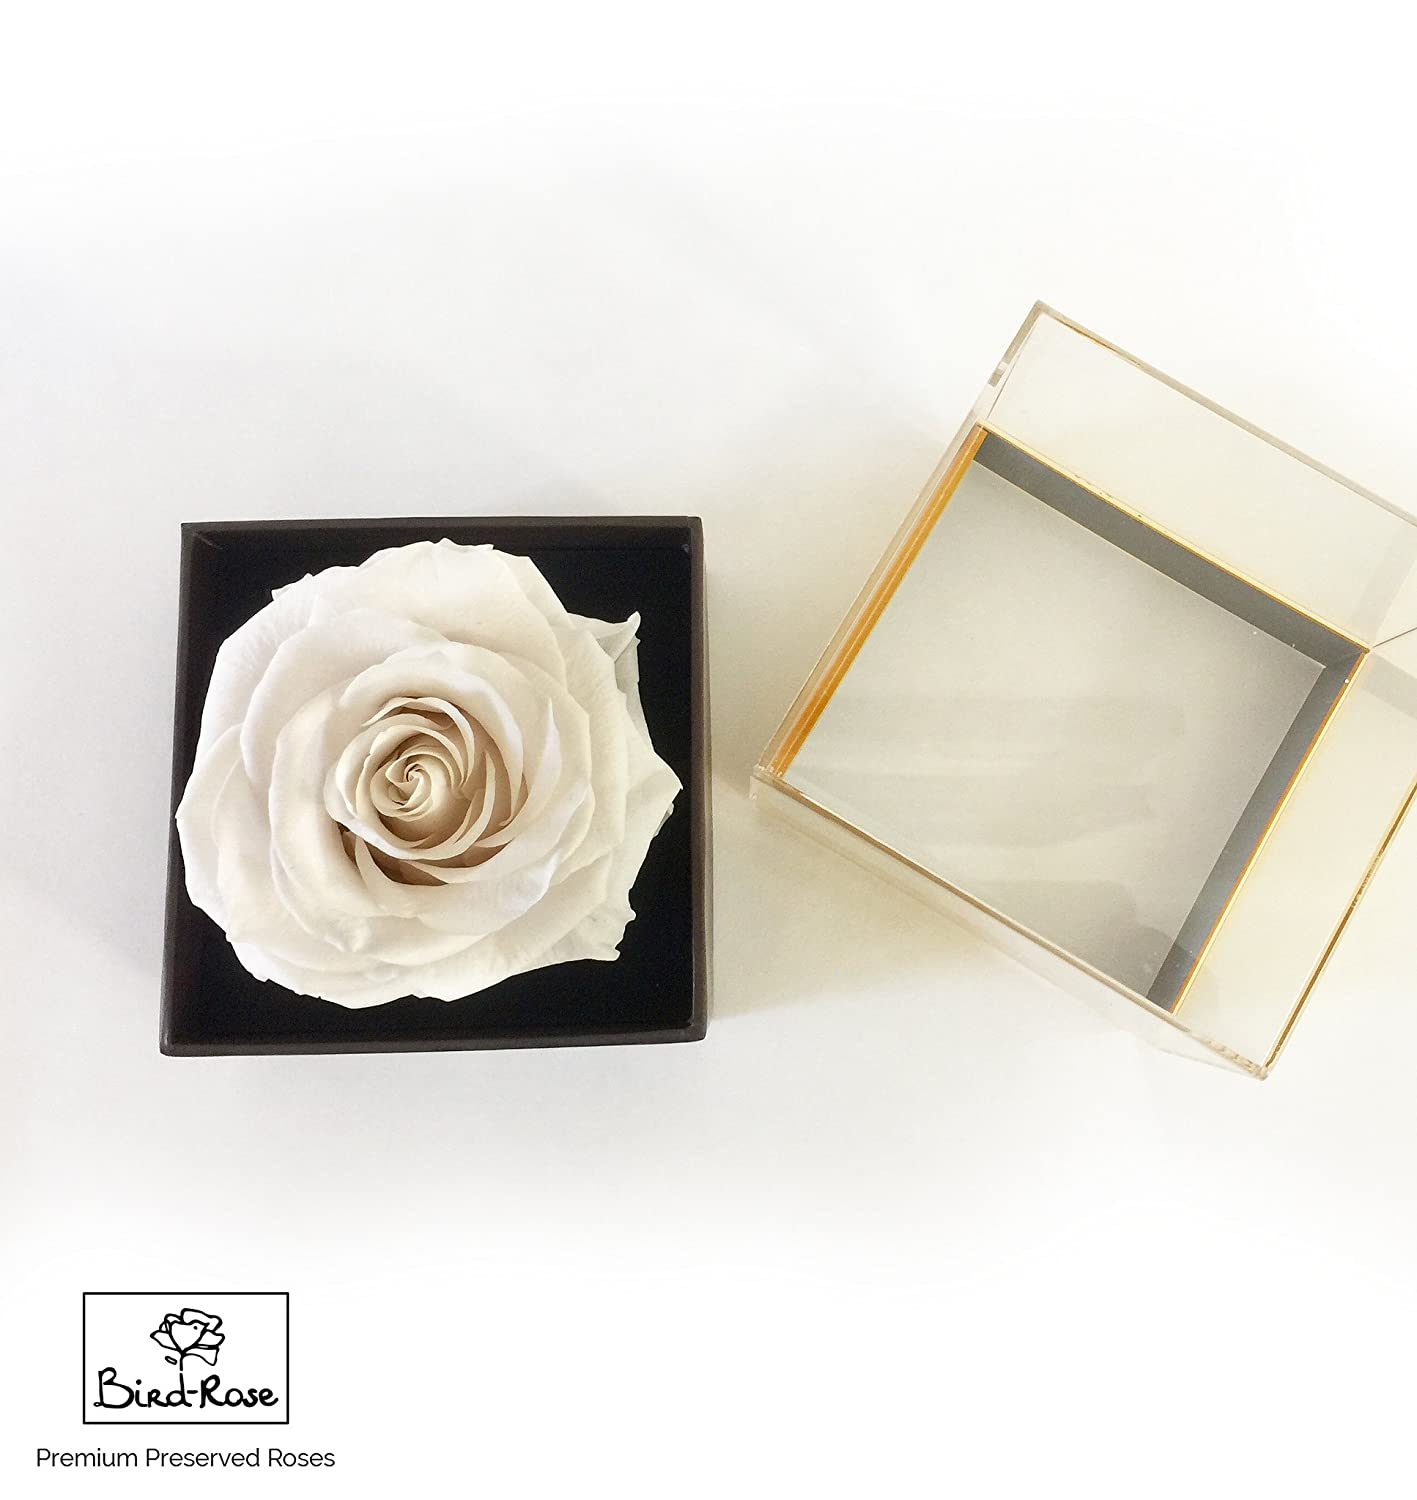 Eternal Rose / Preserved Rose/ Long lasting Rose XXL (8.5 to 11 cm) - Clear Acrylic Designer Giftbox - Several Colours available Bird-Rose